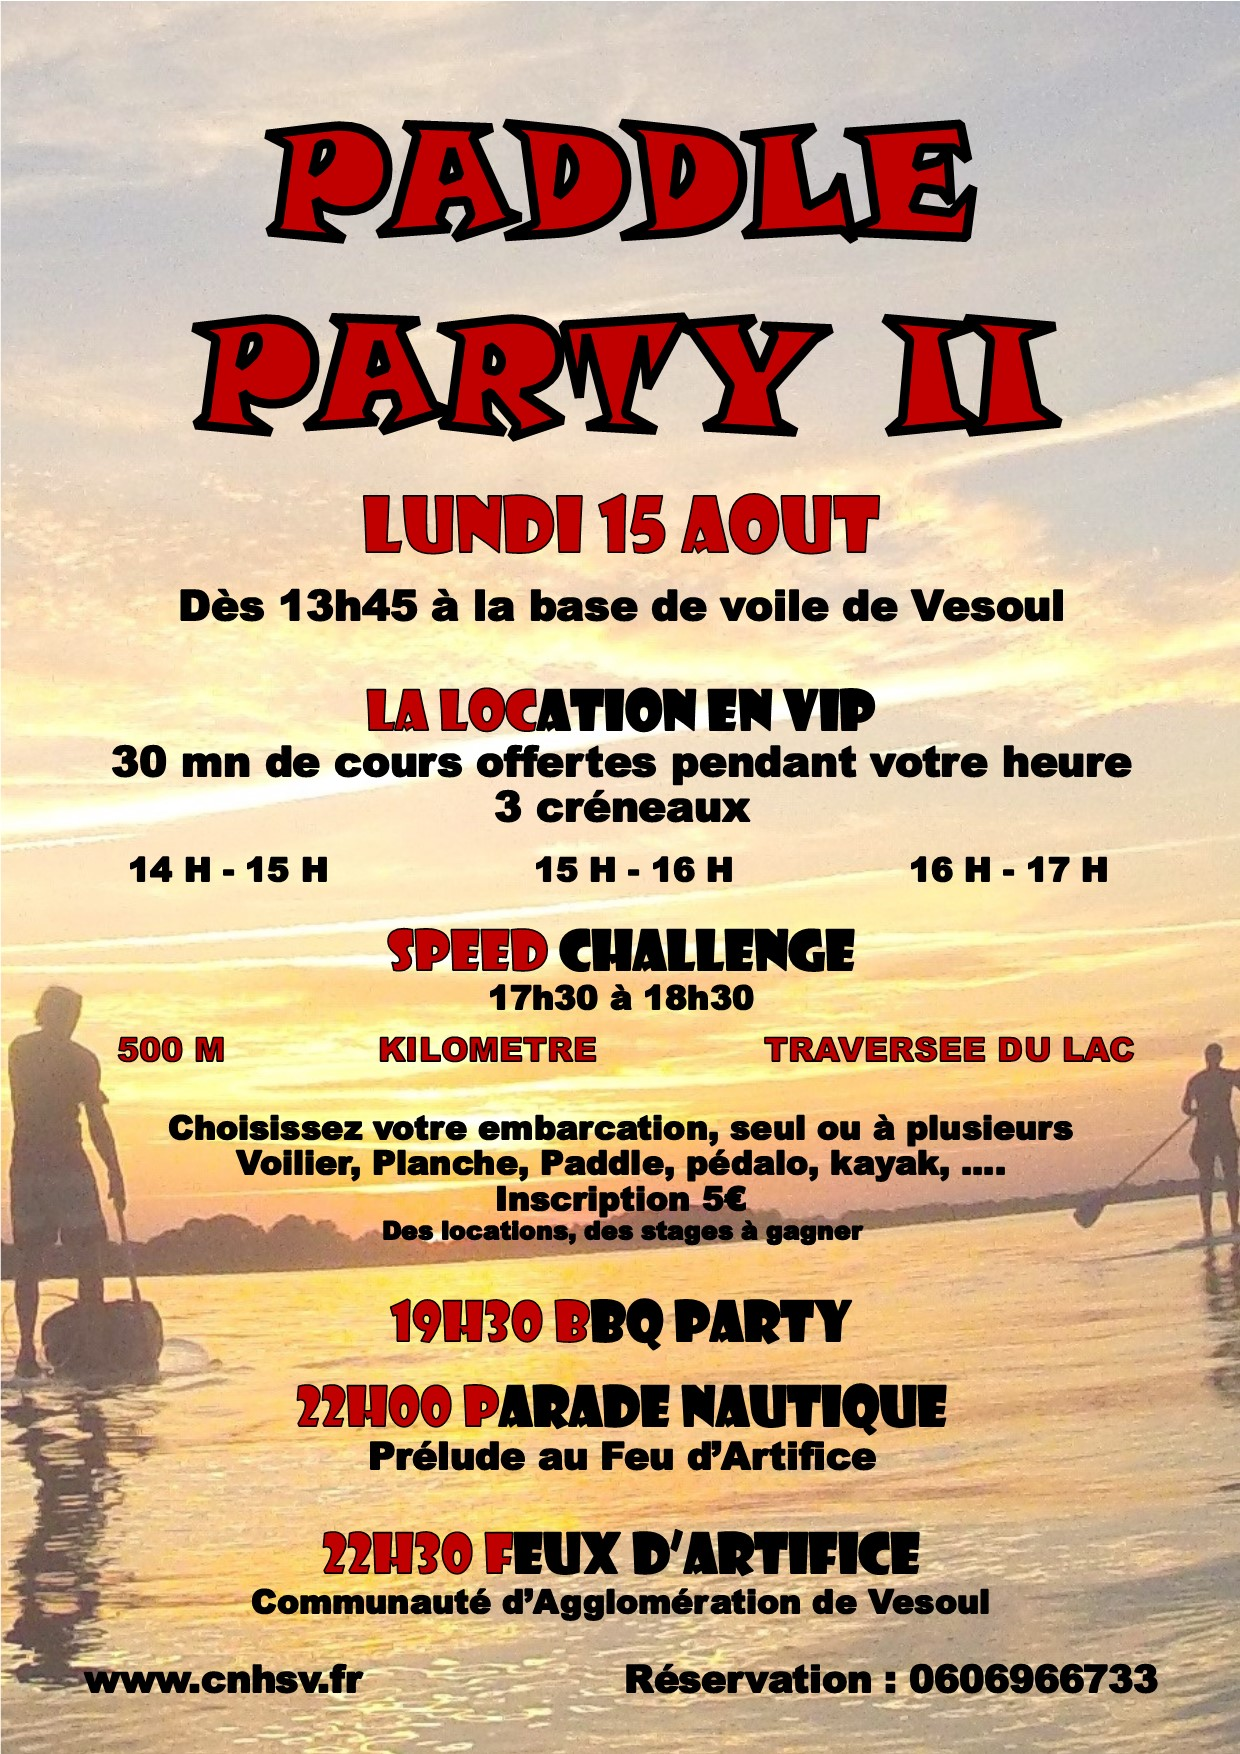 Affiche Paddle Party 15 août